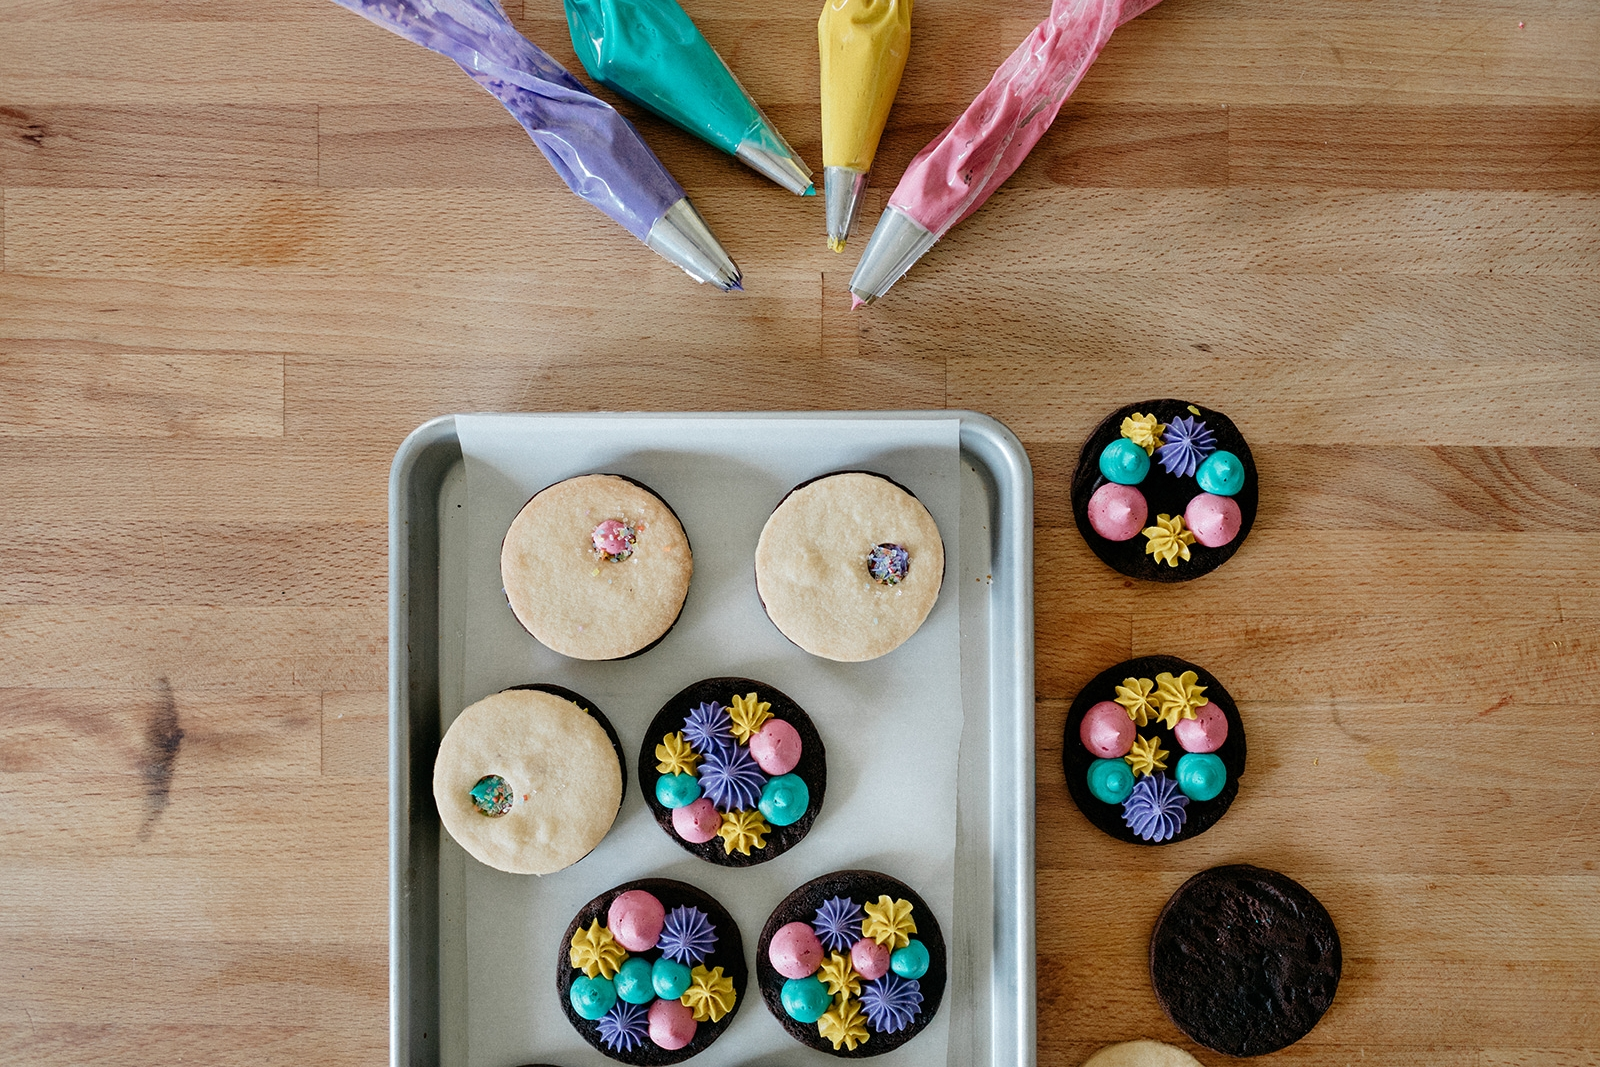 molly-yeh-shakespeare-cookies-8.jpg